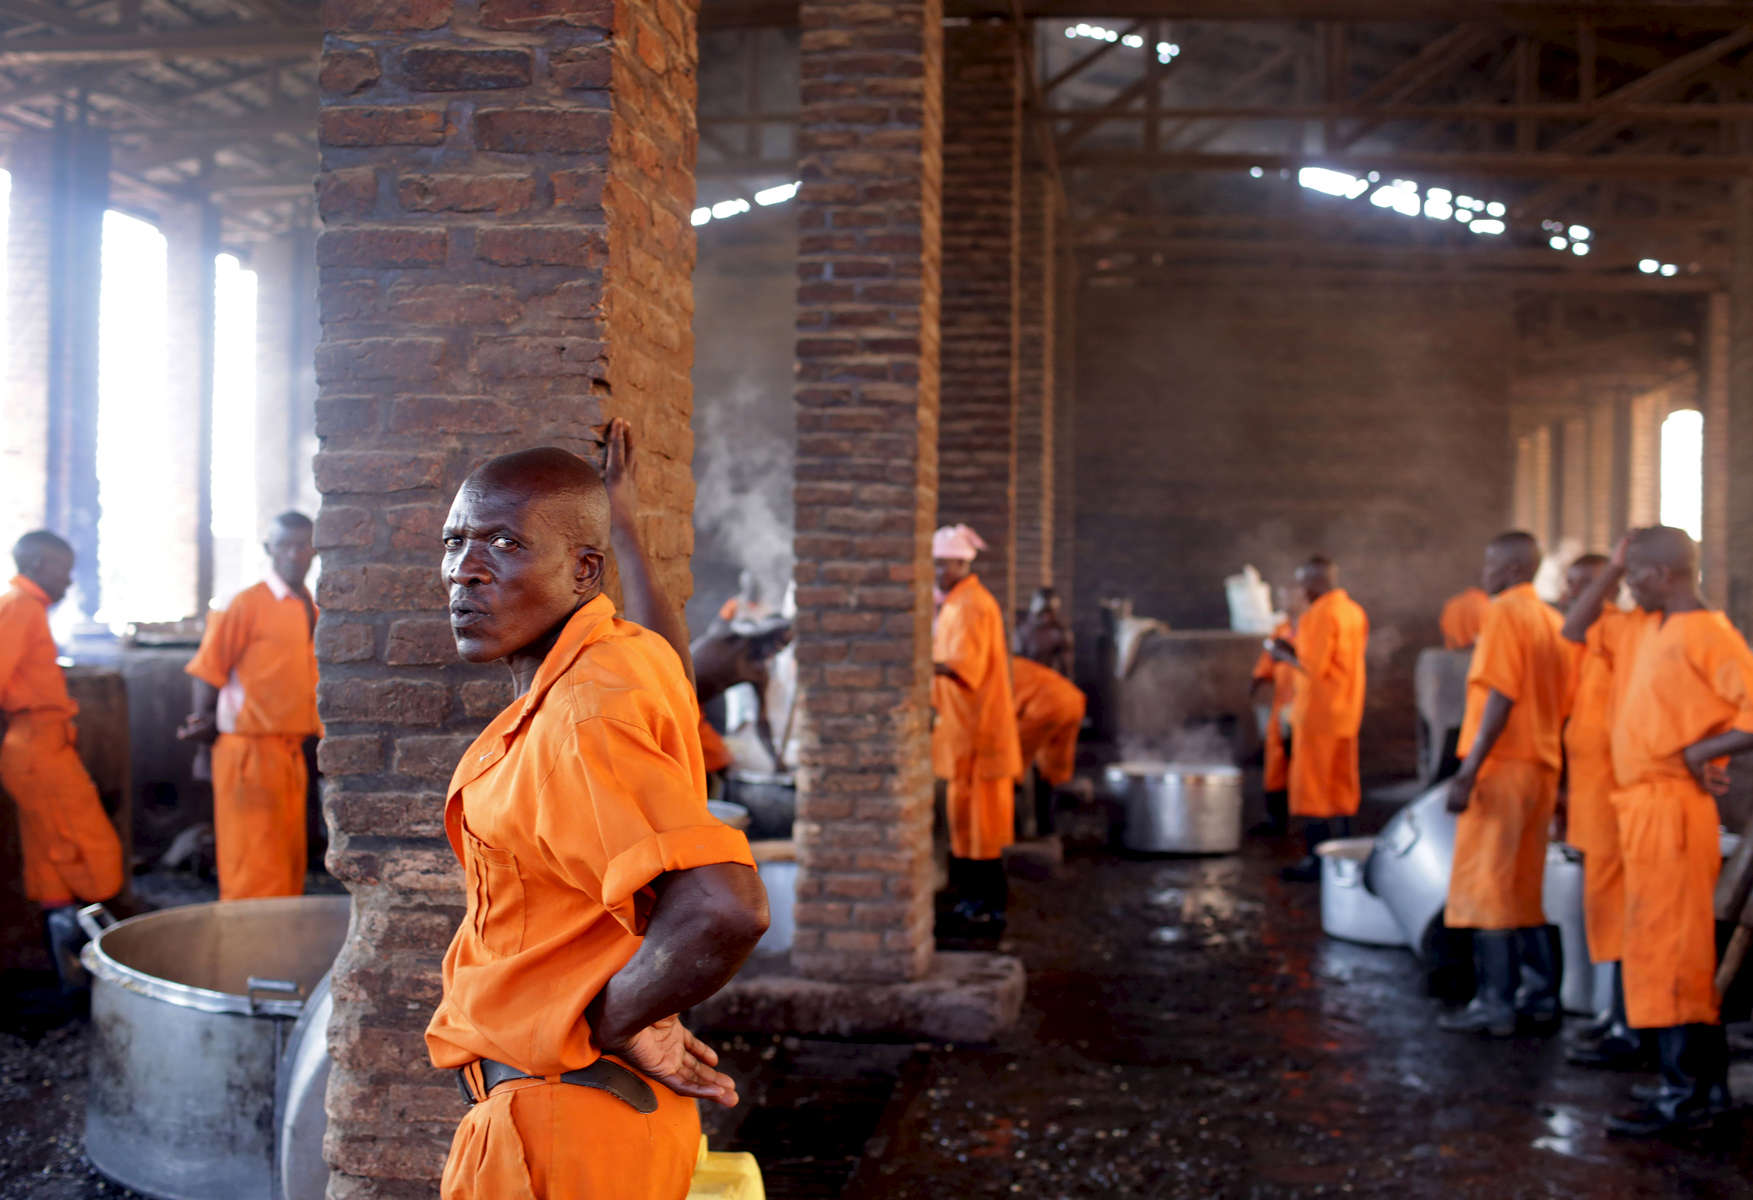 Prisoners rest in between cooking food via peat and biogas at Rwamagana Prison in Rwamagana, Rwanda, on November 18, 2017. All of Rwanda's prisons use their prisoners' waste - in addition to that of cows - to fuel their kitchens via biogas. At Rwamagana, biogas is used to cook corn, and peat cooks rice and beans. Many prisoners say they can usually tell when biogas is used due to the lack of smokey flavor in food. Nearly half of all Rwandans live in poverty, relying on small-scale farming for survival without gas or electricity. With so many women and children spending hours of the day foraging for wood used for cooking and light, often damaging their eyes, lungs, the forests and atmosphere, a little inventiveness helps. Enter cow and enter pig — not just as a source of food, but also the heat needed to cook it. Or more specifically, their poo — the fuel fed to a biogas digester, a tank that coverts organic waste into methane. Photographs by: Yana Paskova